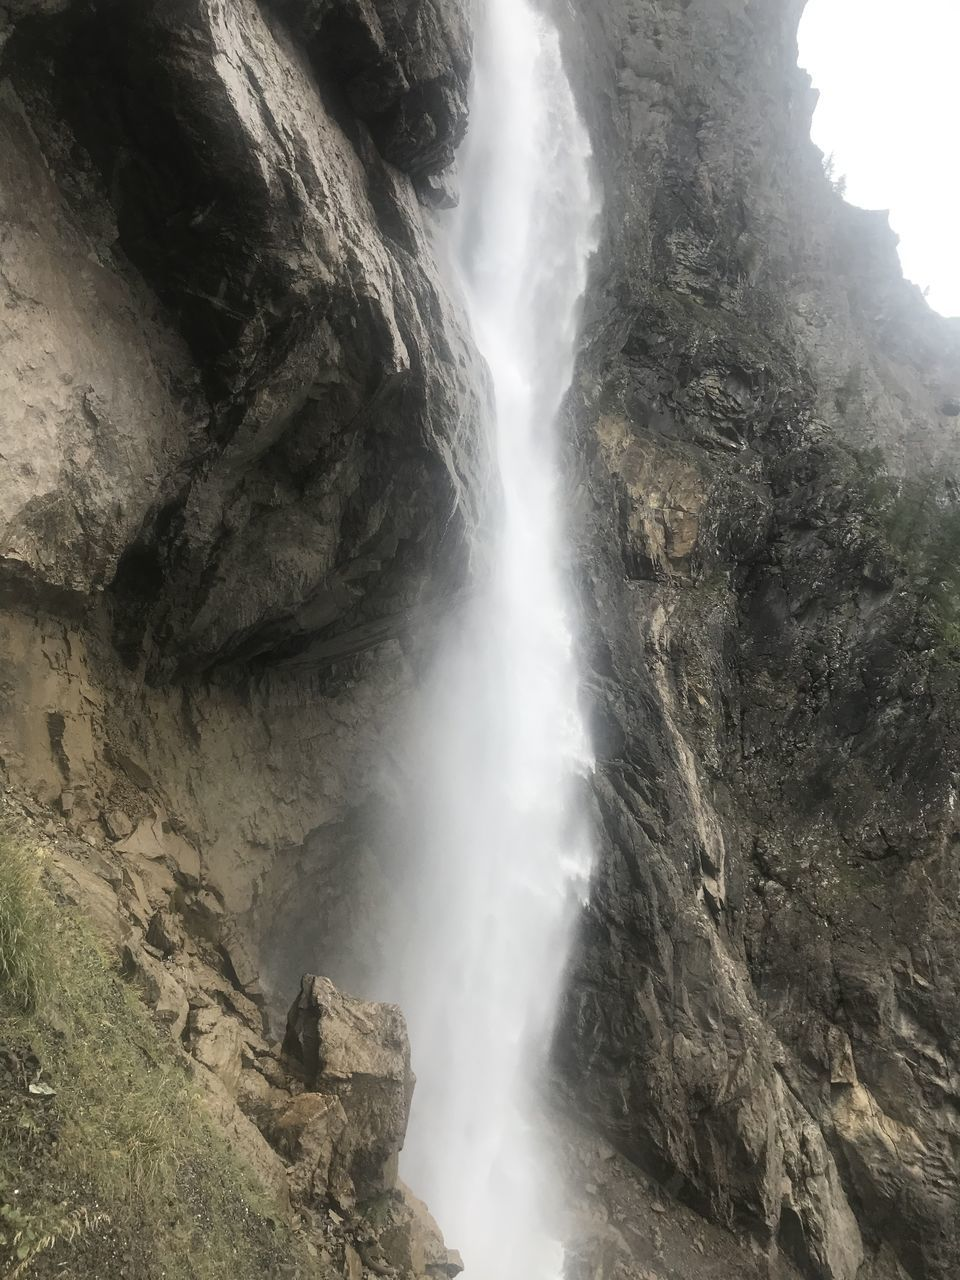 LOW ANGLE VIEW OF WATERFALL AMIDST ROCKS